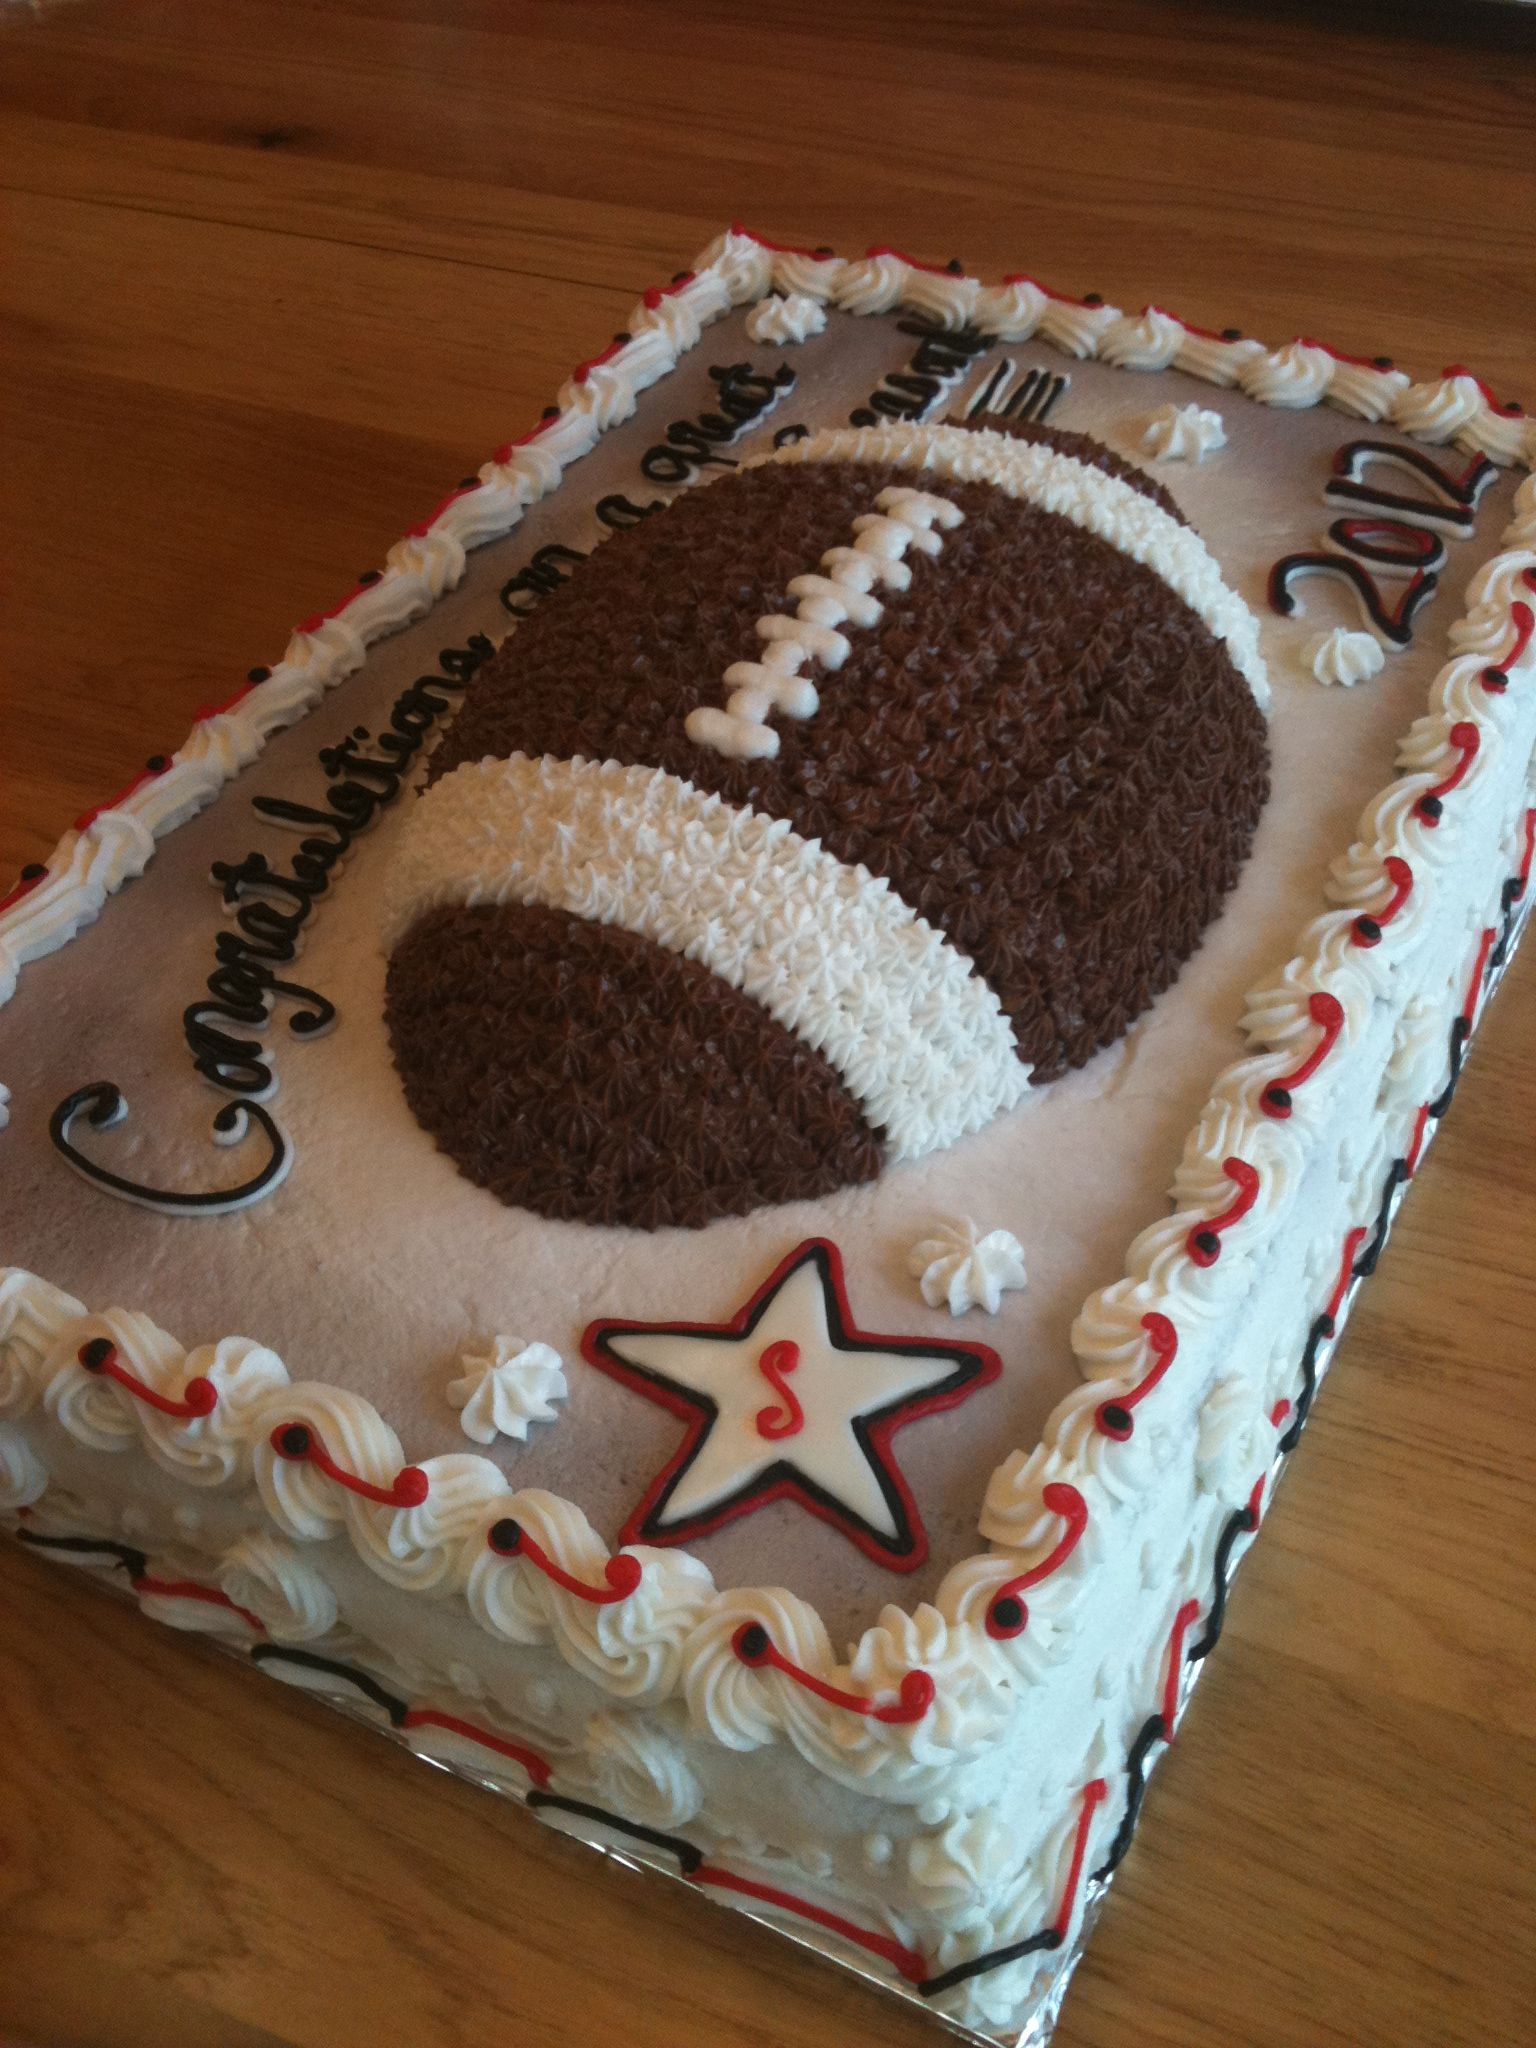 3D Football cake on top of Sheet Cake*